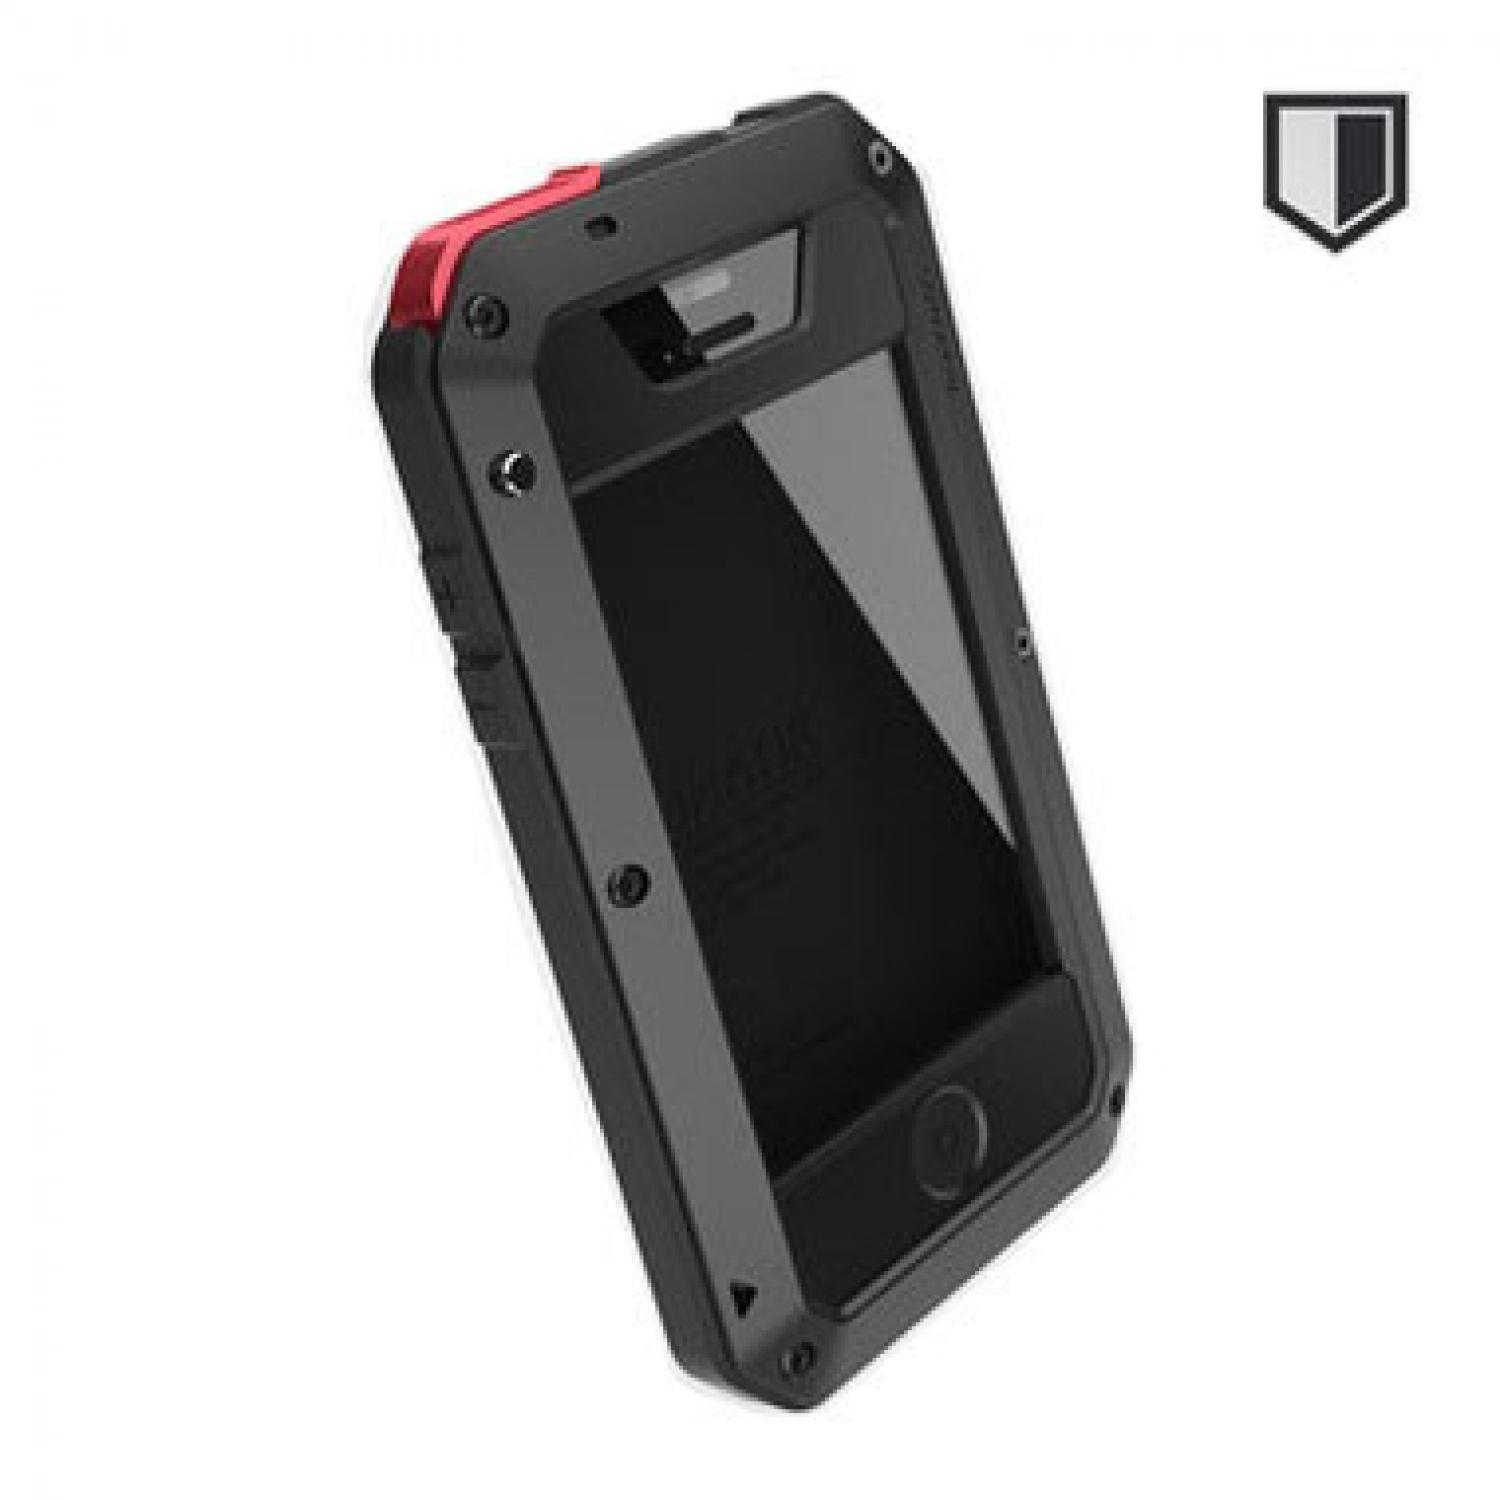 Lunatik Hardcase Armor Waterproof with Gorilla Glass for iPhone 5s